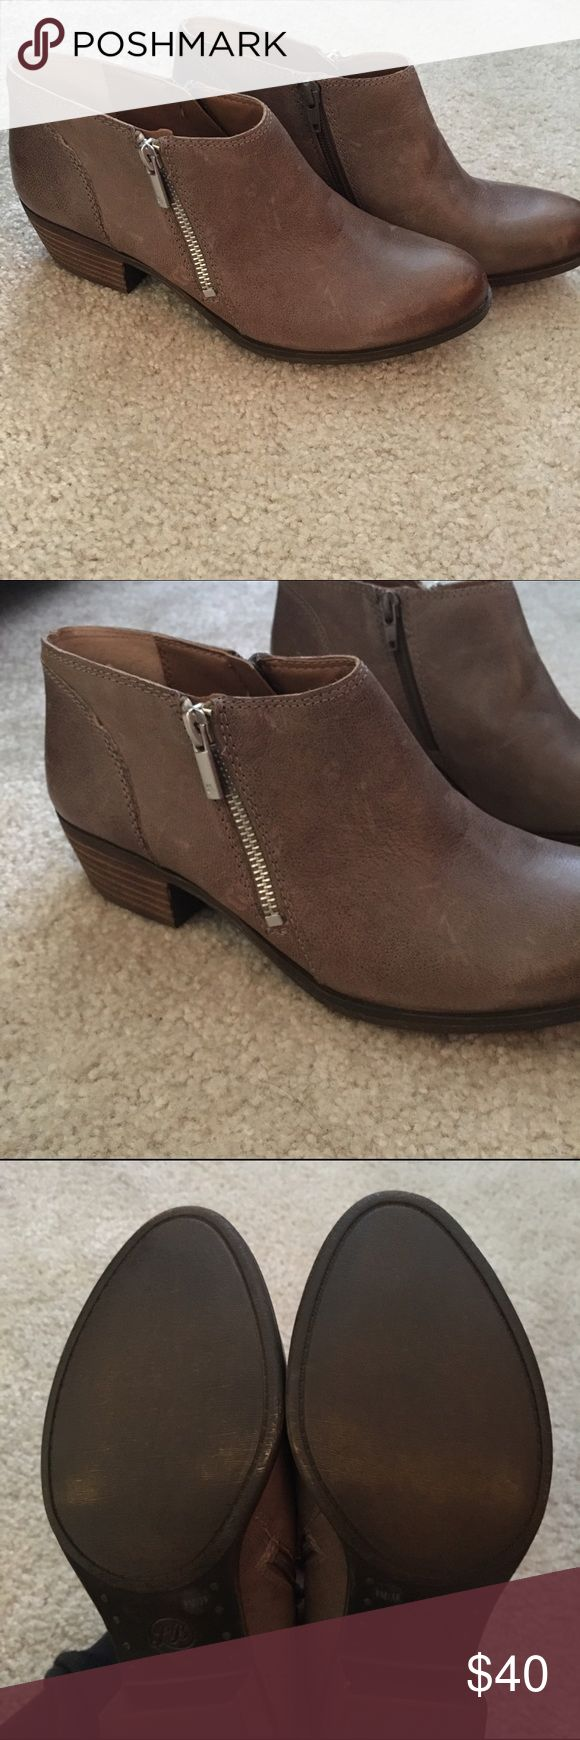 Lucky Brand booties Perfect leather booties  Get ready for fall ladies  NEVER WORN!!!! Lucky Brand Shoes Ankle Boots & Booties